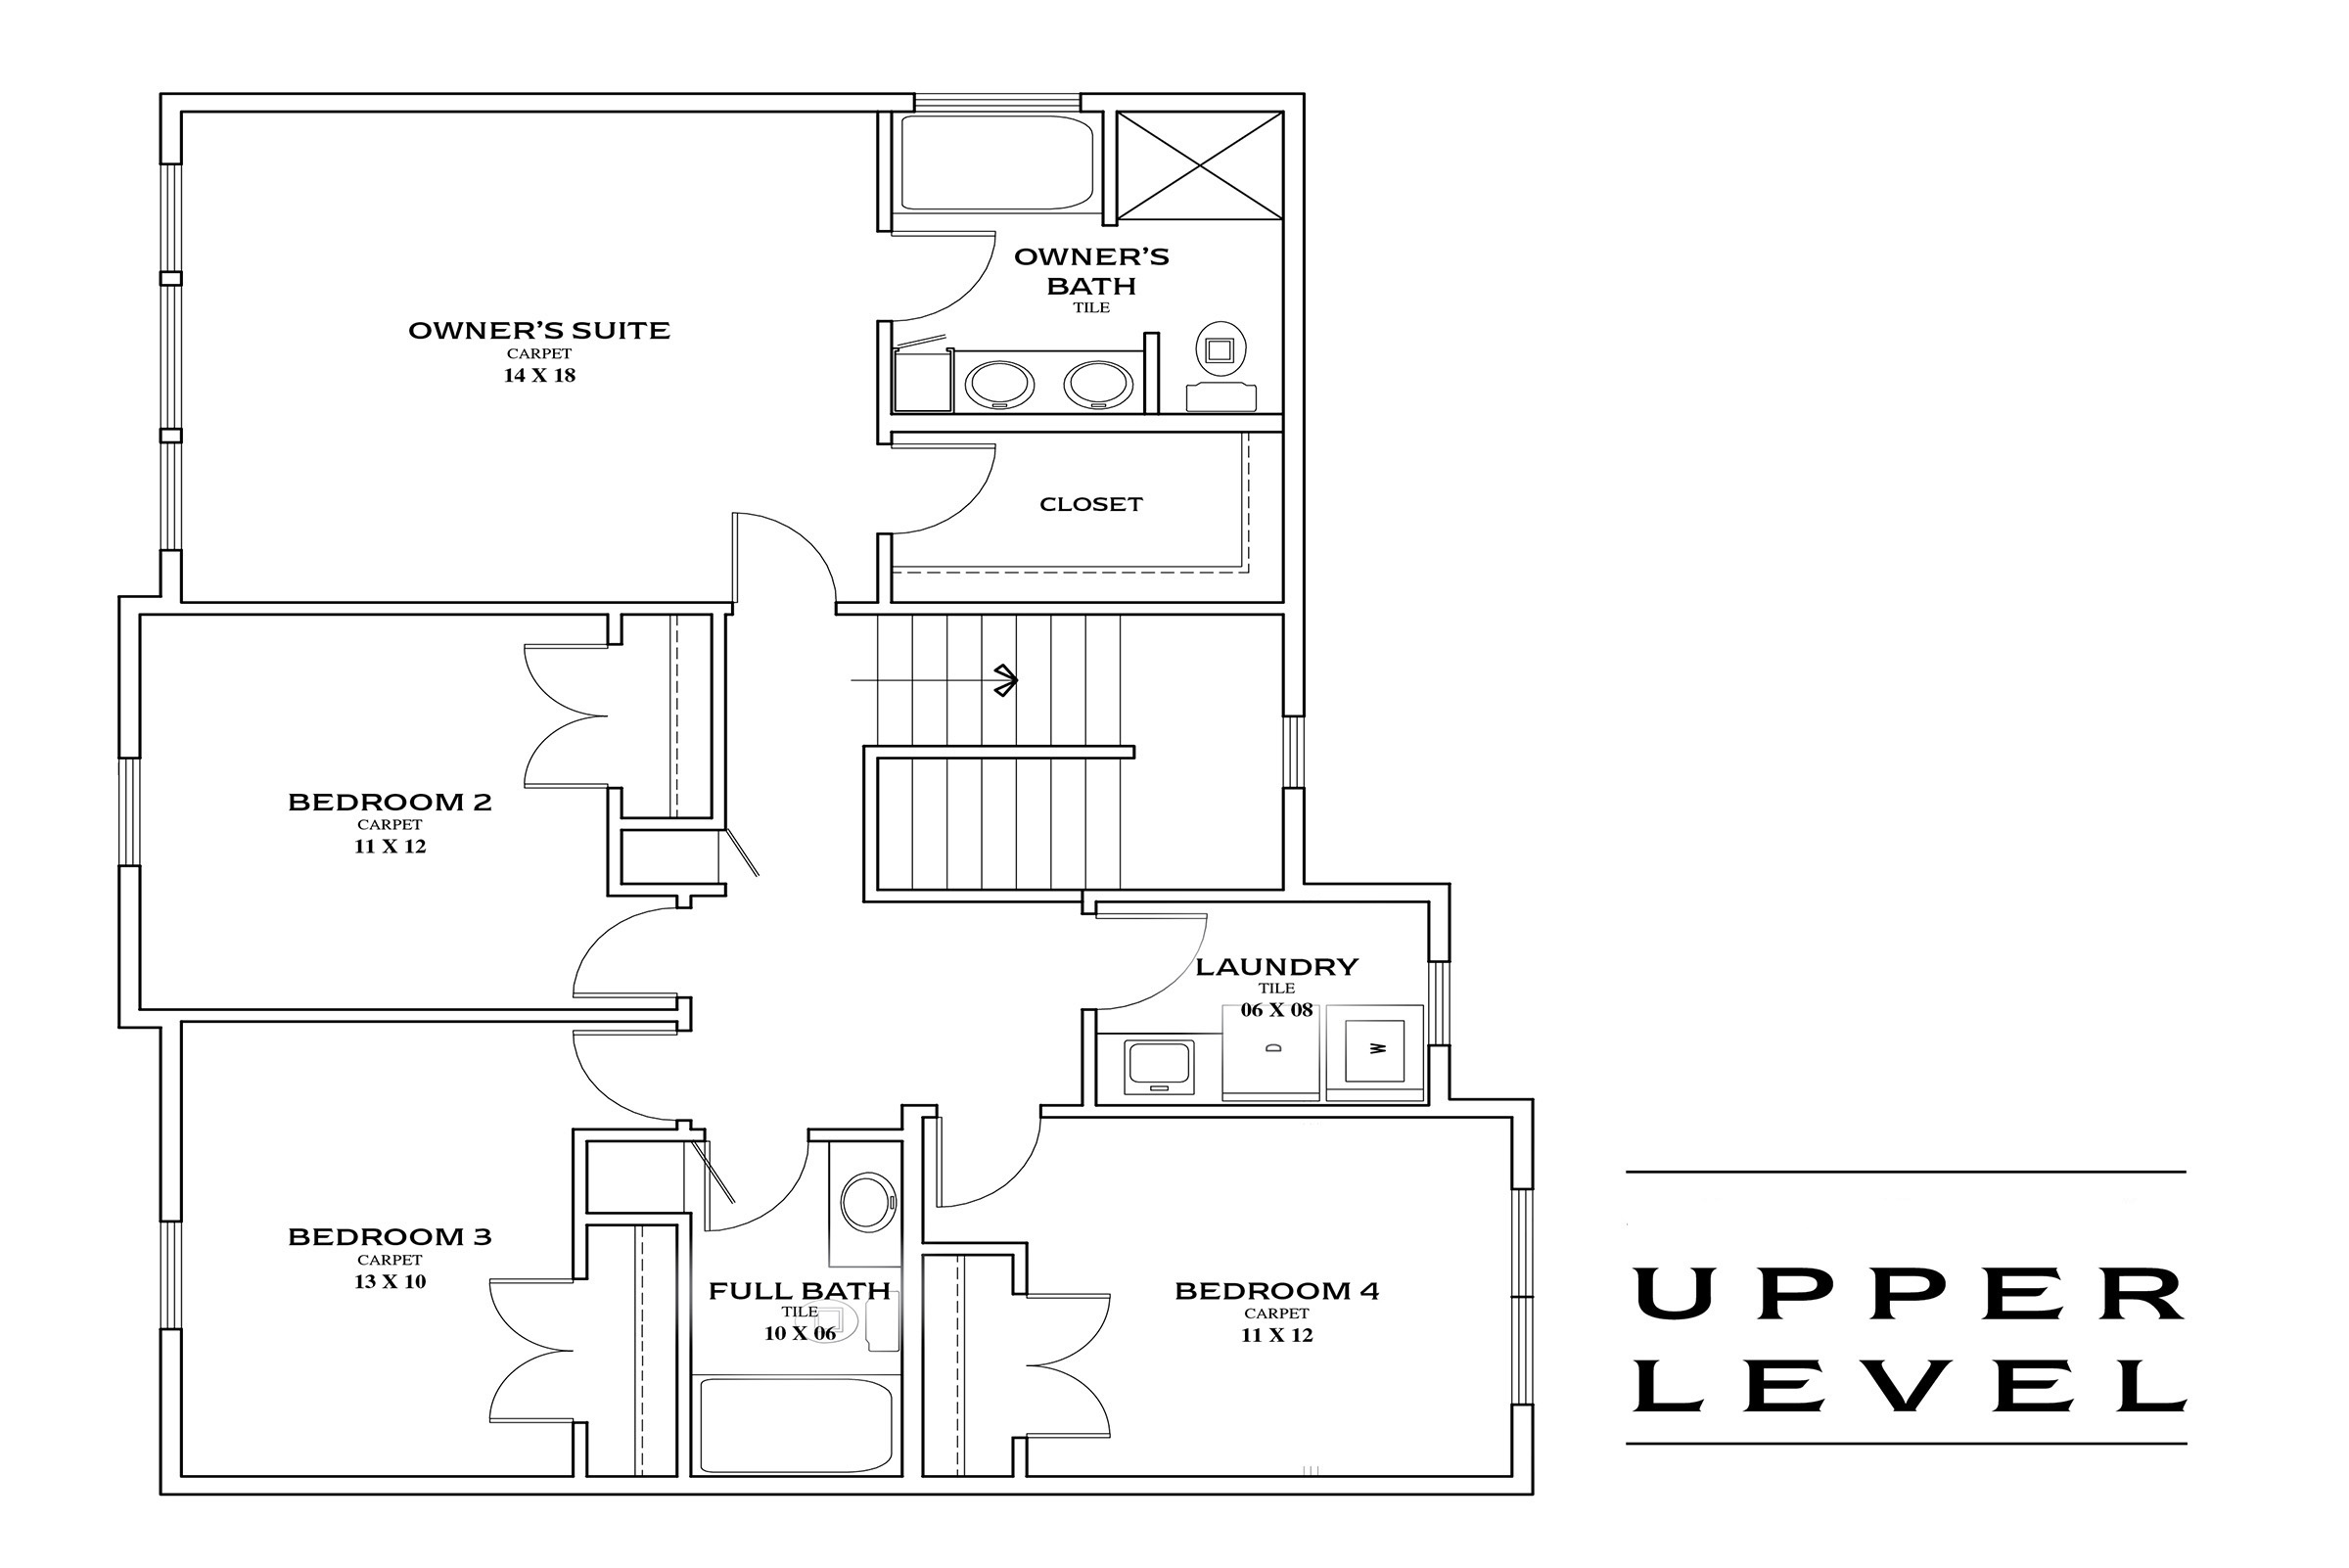 TJB Maddy Home Plan #360 Upper Floor Plan